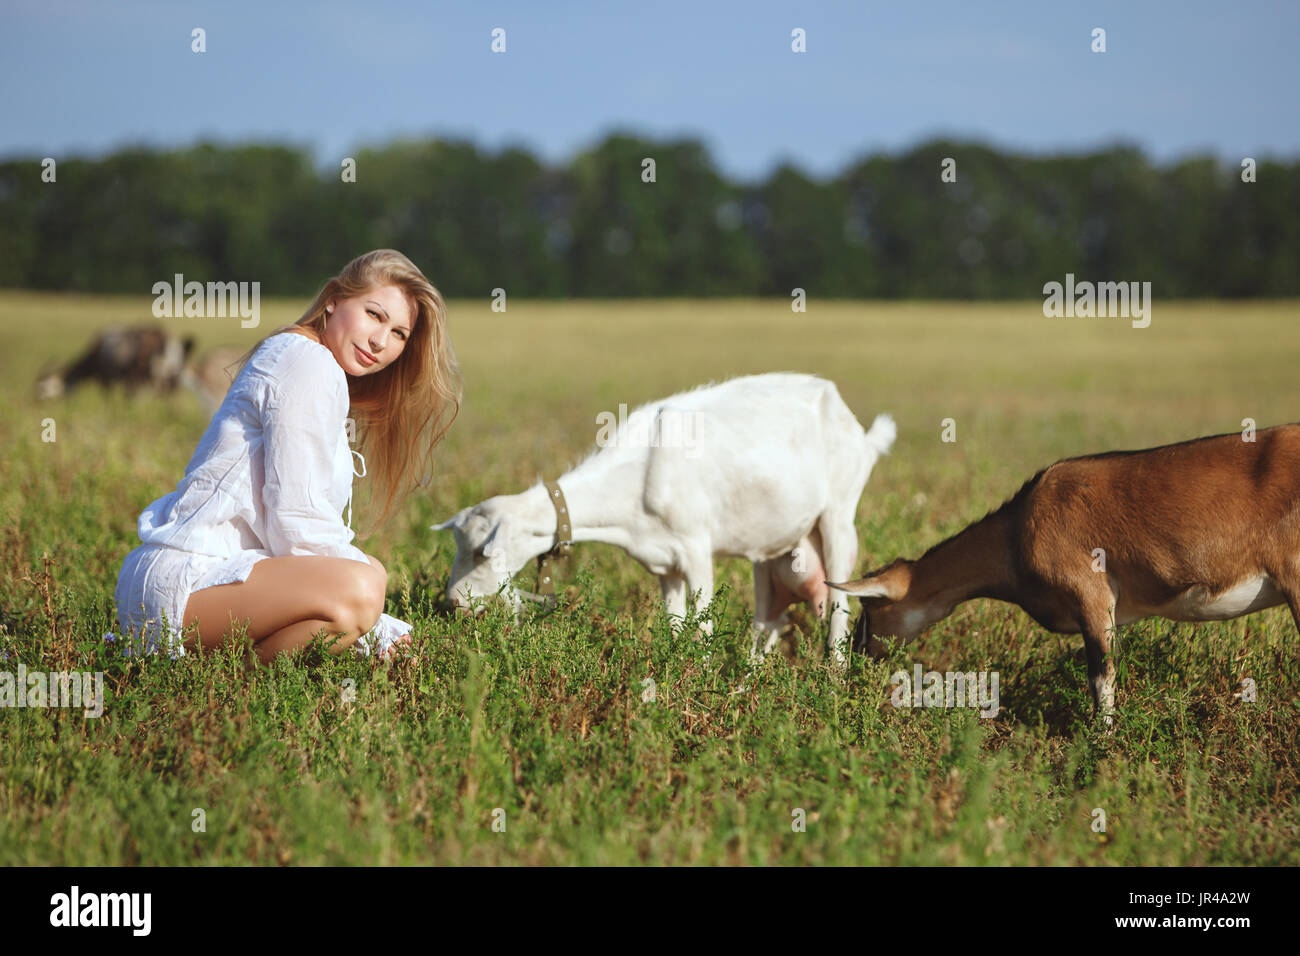 Woman feeds goats in the field, a summer bright day. - Stock Image